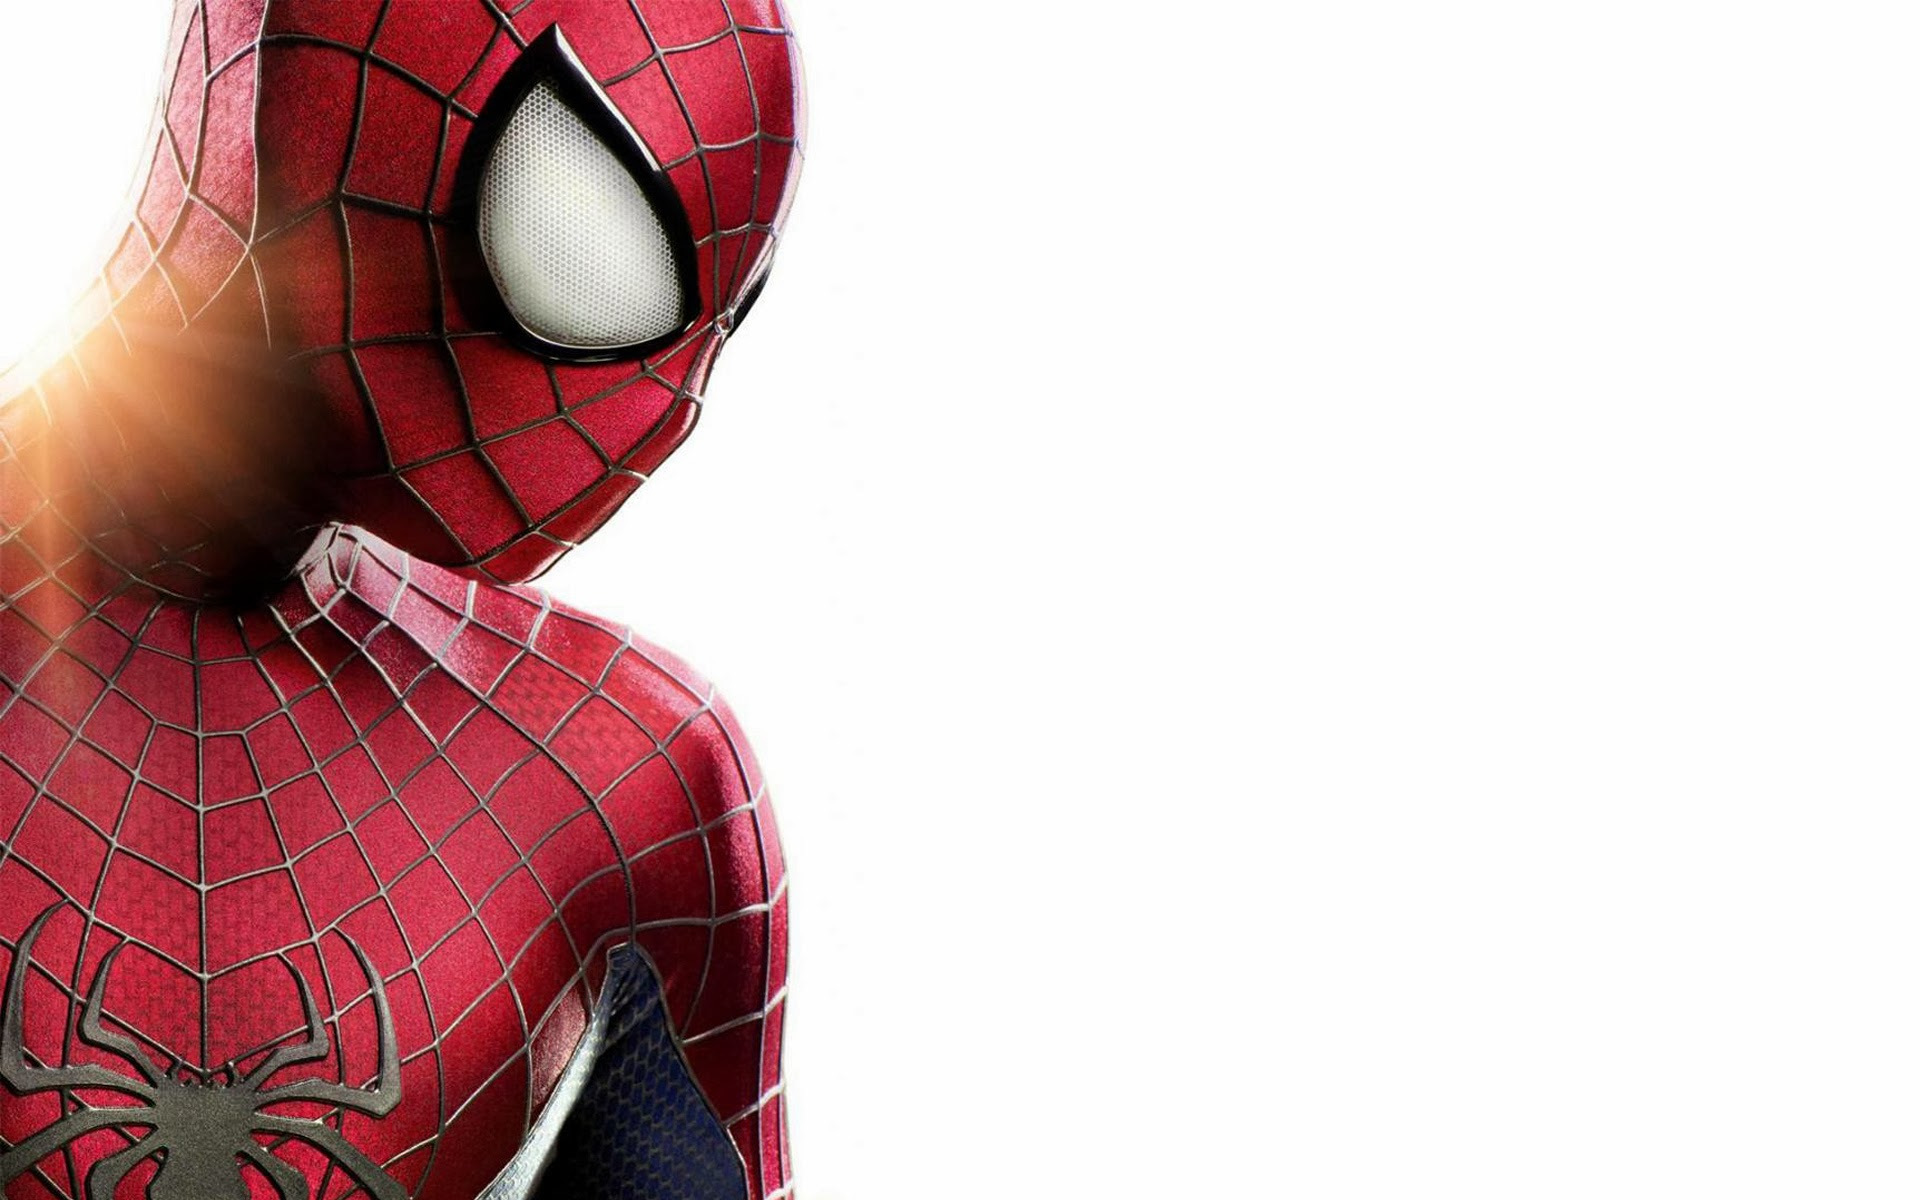 spider man images wallpaper high definition high